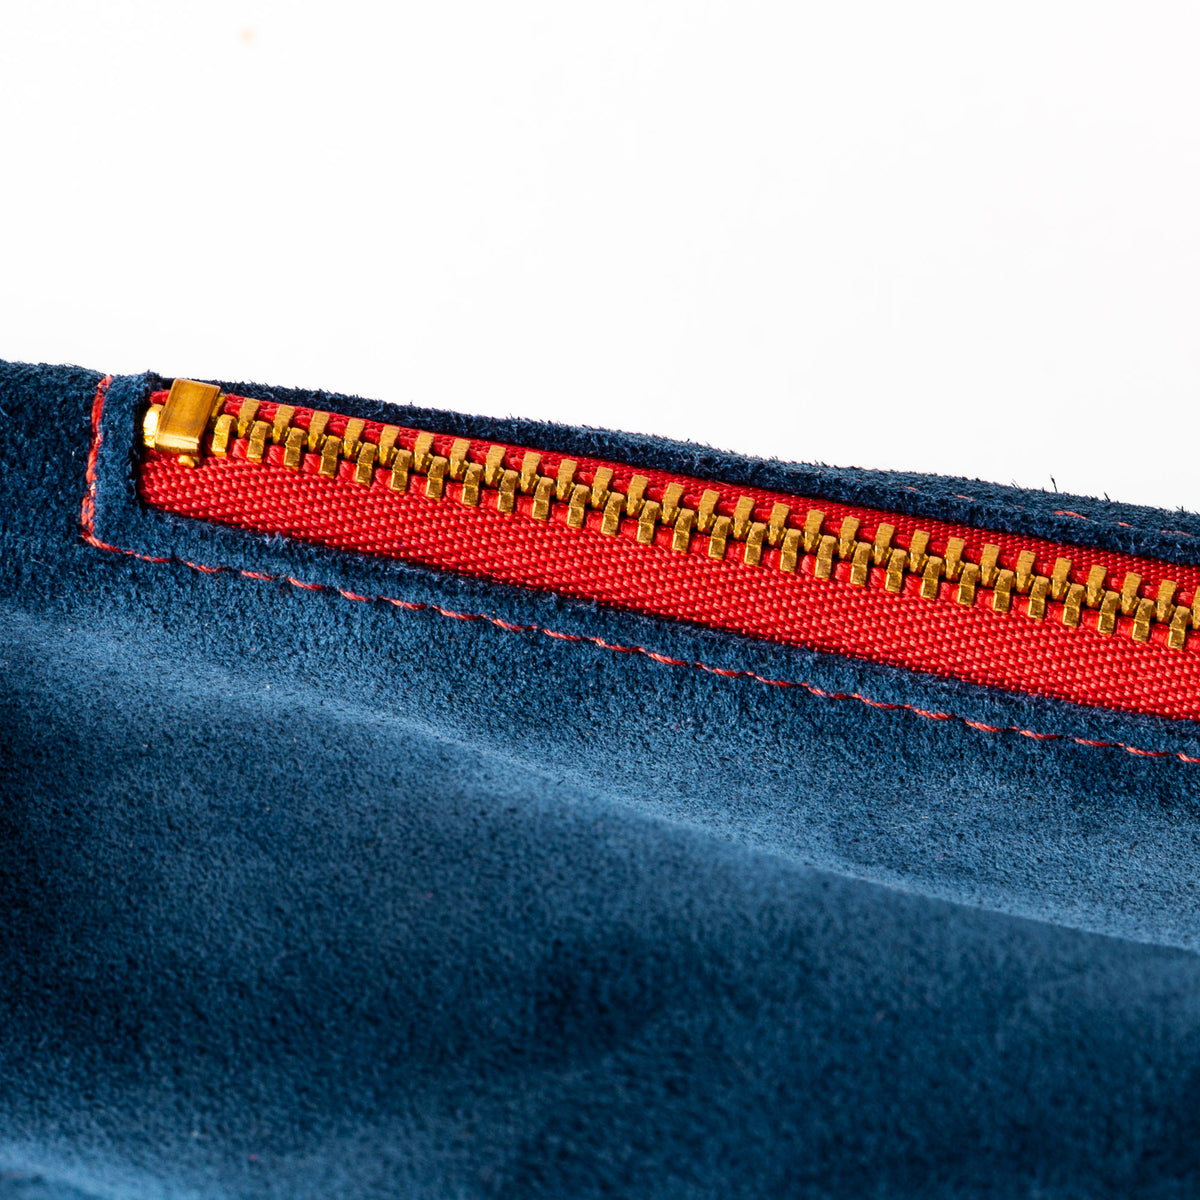 Detail - Blue & Orange - Handmade Small Shoulder Bag in Suede Calfskin - Sold by Chic & Basta